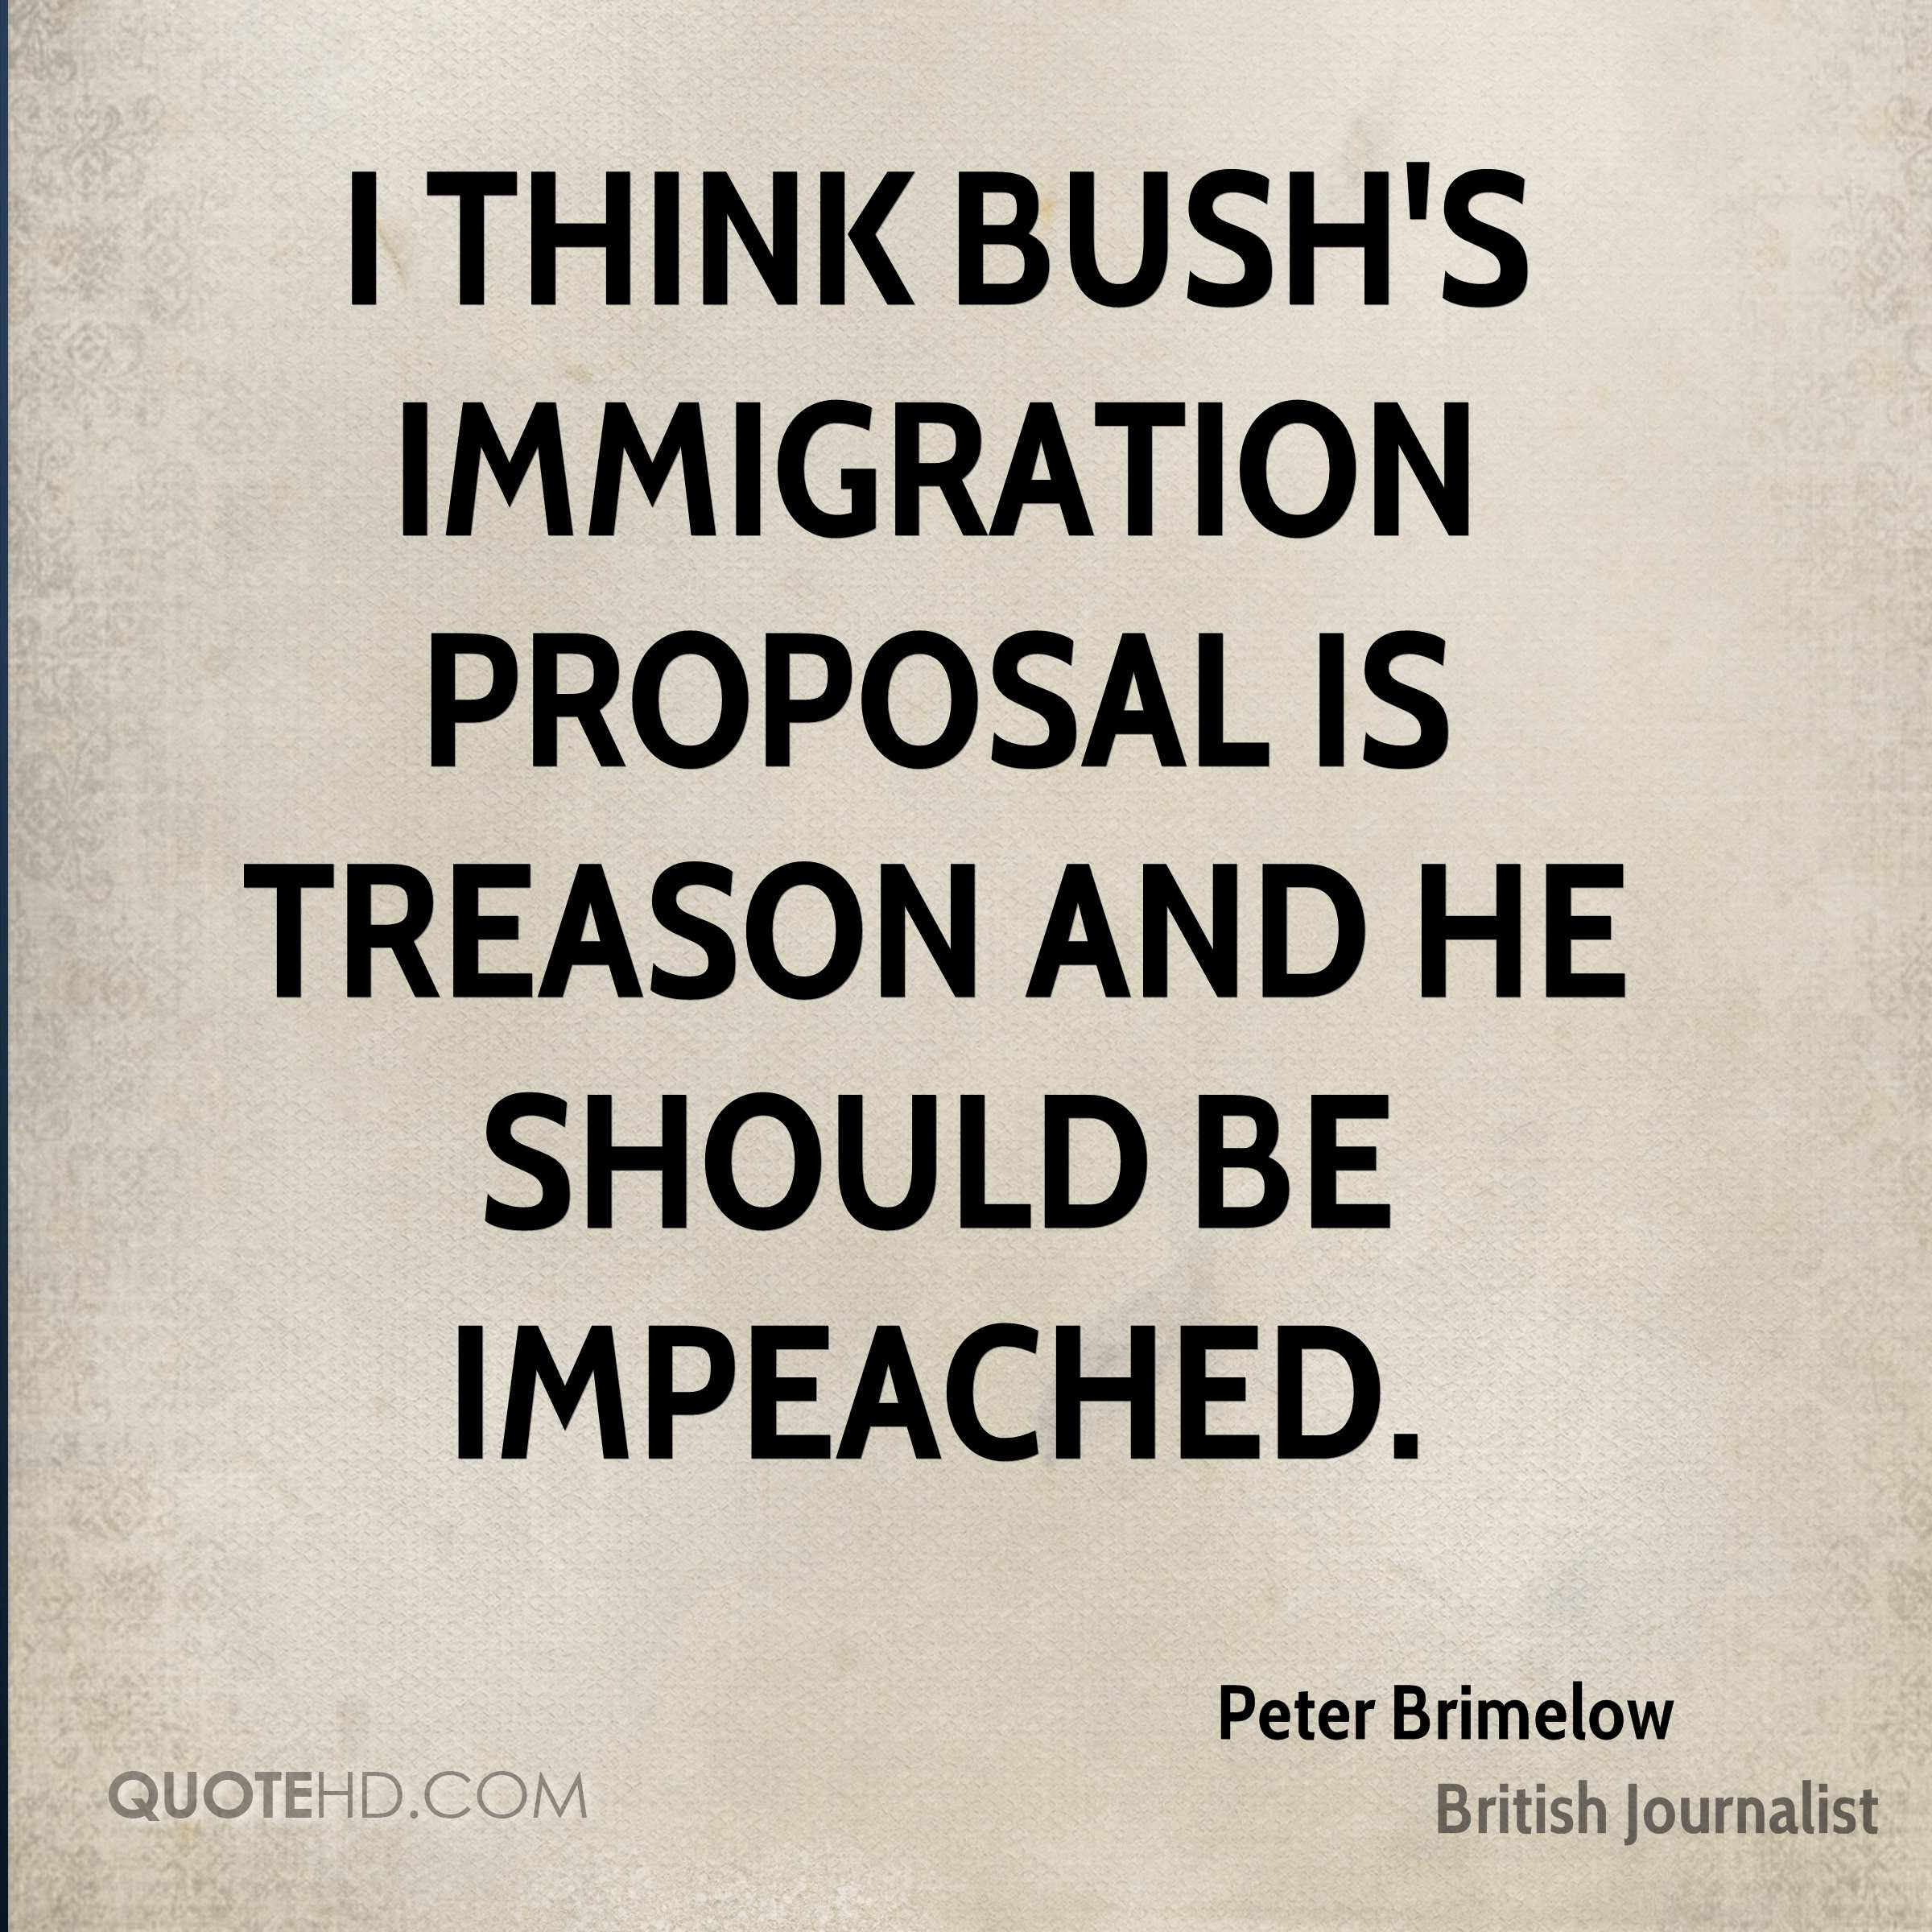 I think Bush's immigration proposal is treason and he should be impeached.